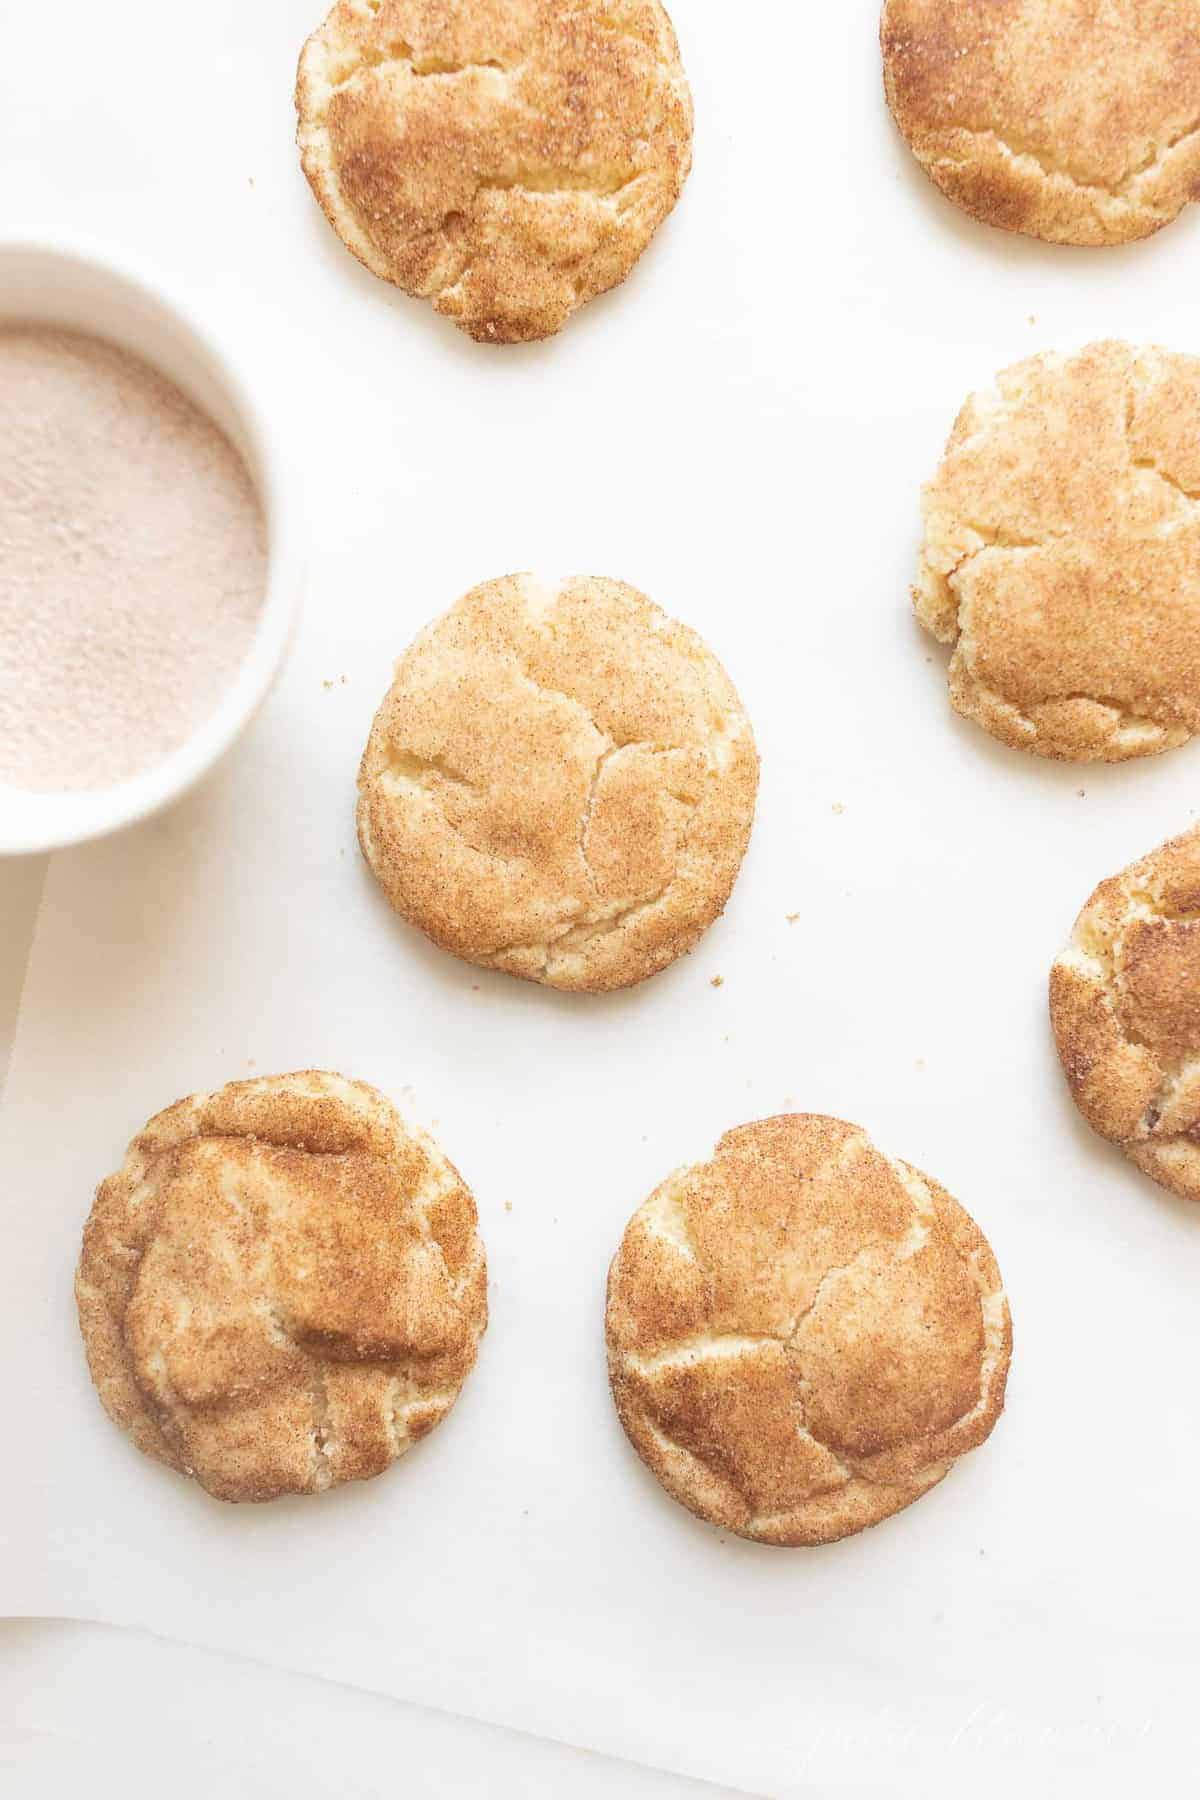 Soft and fluffy snickerdoodle cookies on a white countertop. #easysnickerdoodlecookierecipe #softsnickerdoodlerecipe